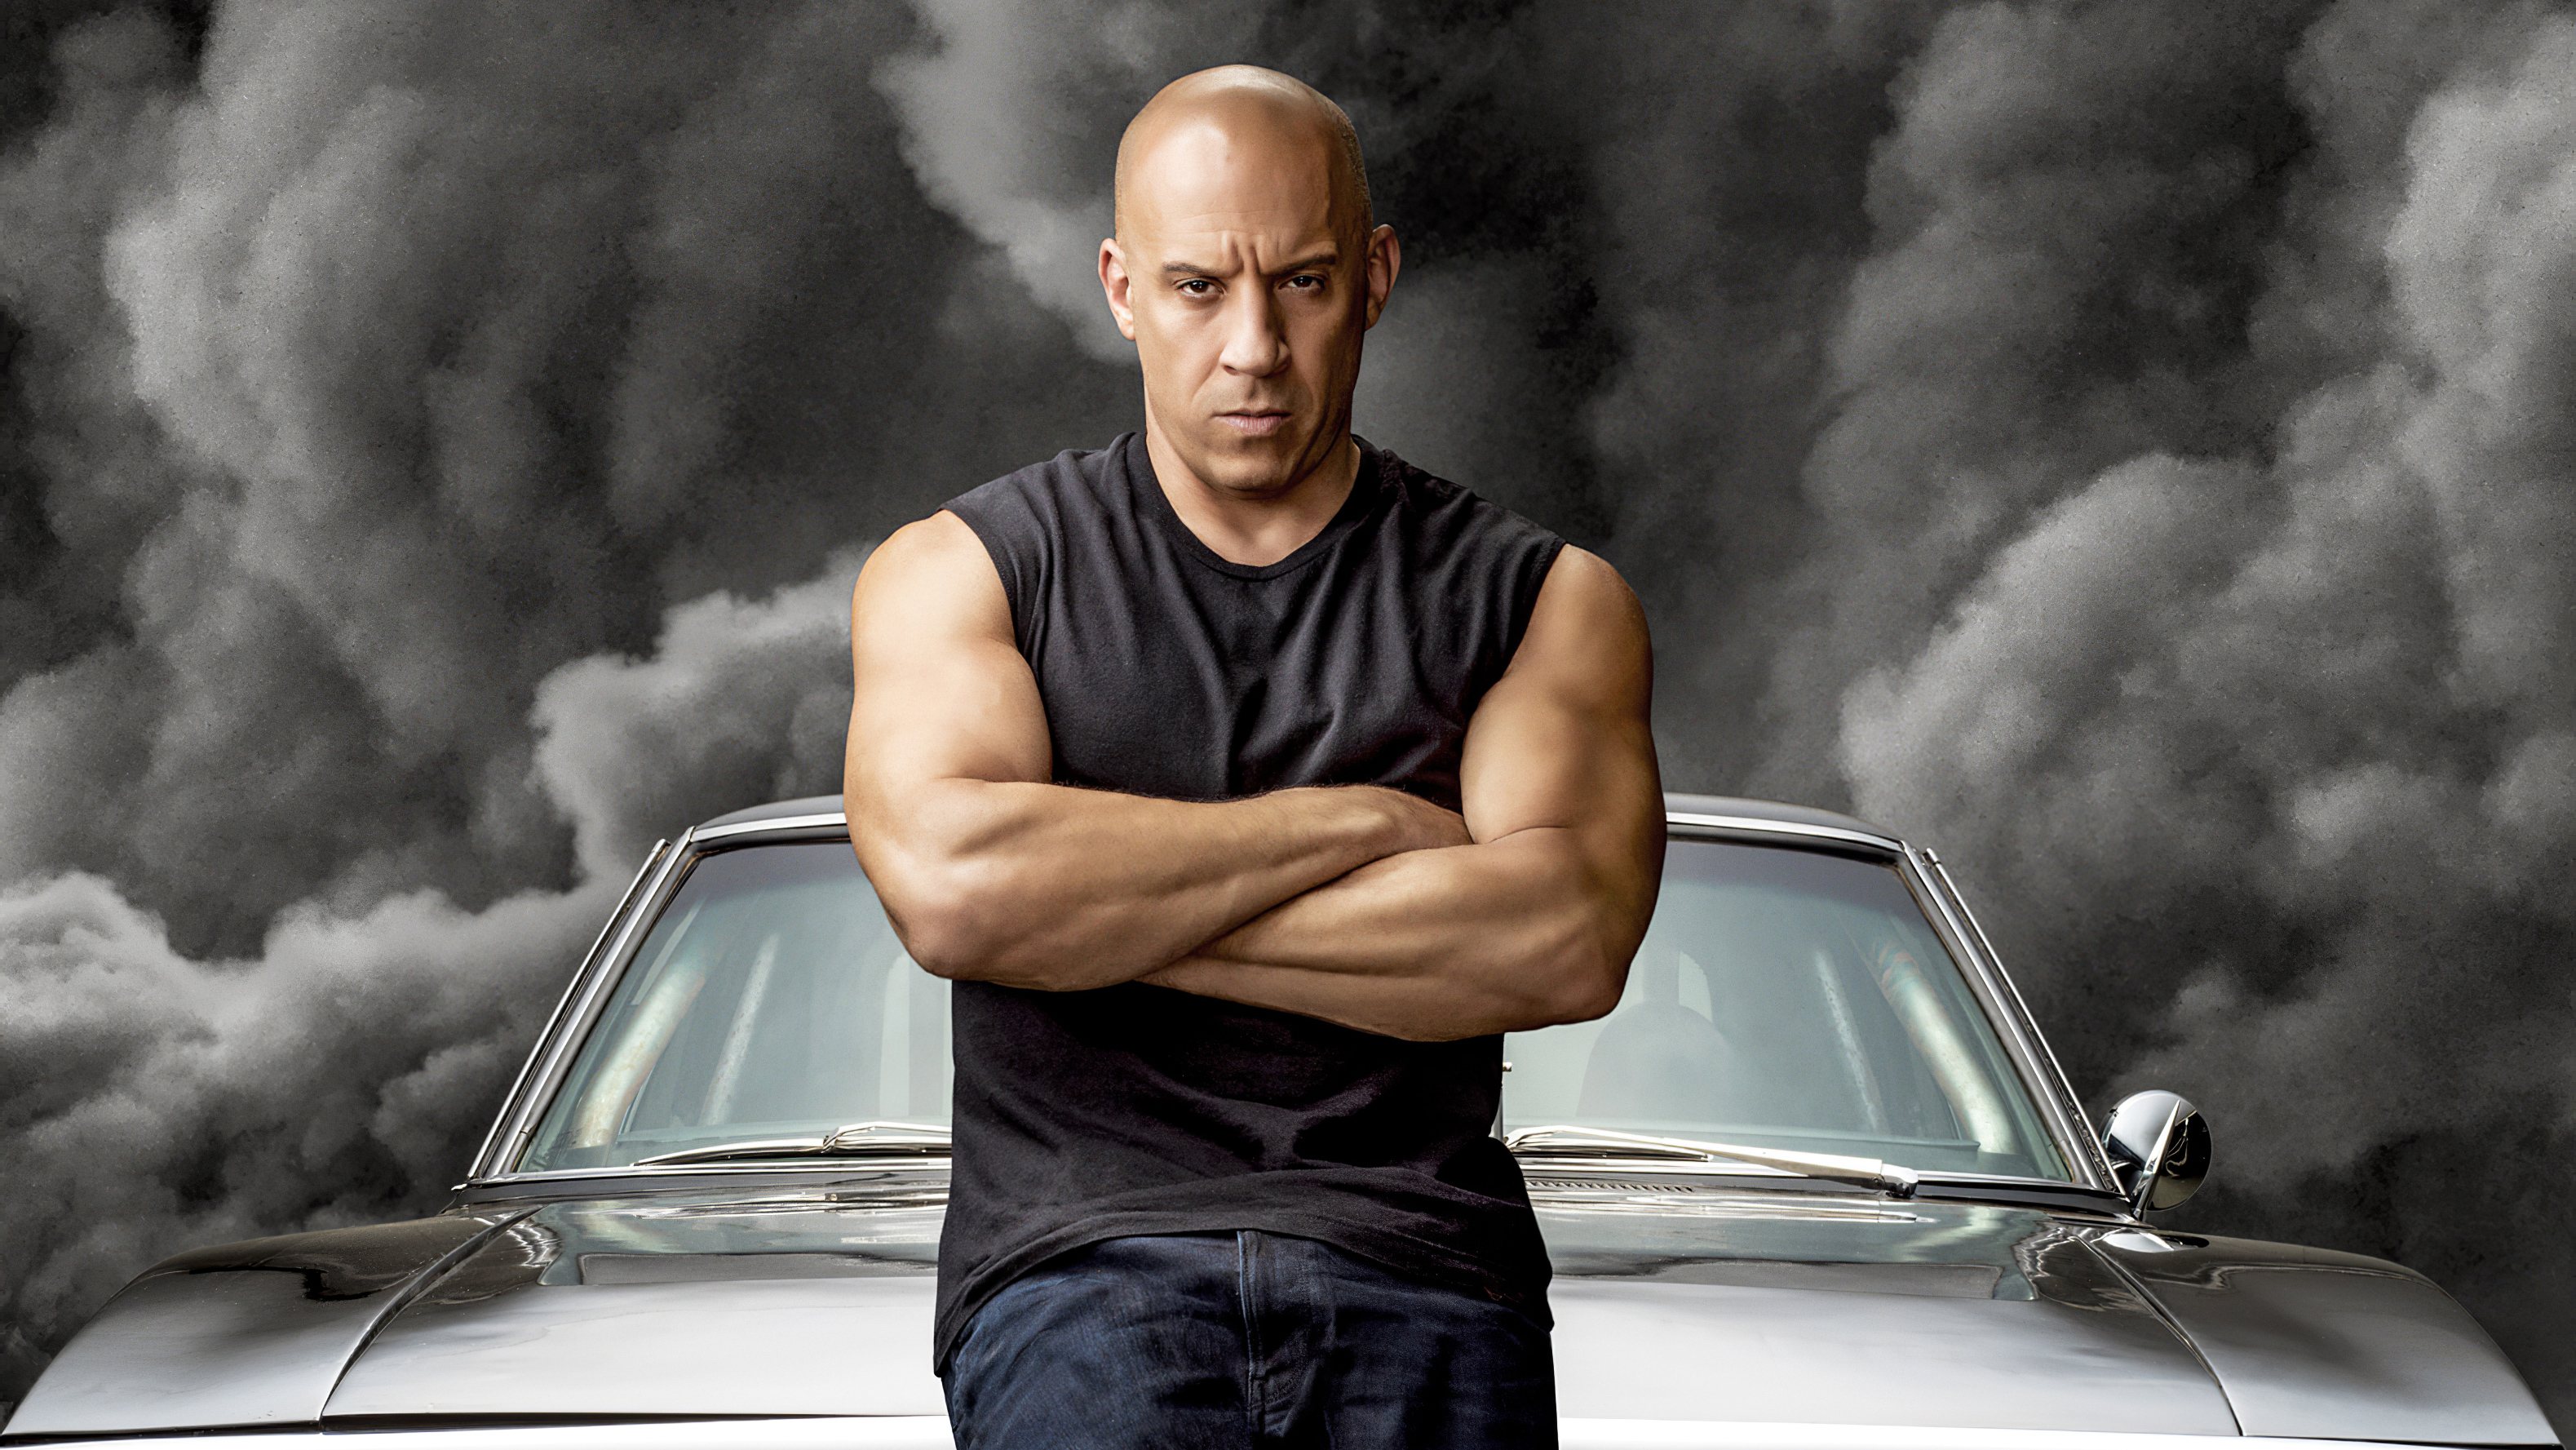 1920x1080 Dominic Toretto In Fast And Furious 9 2020 Movie Laptop